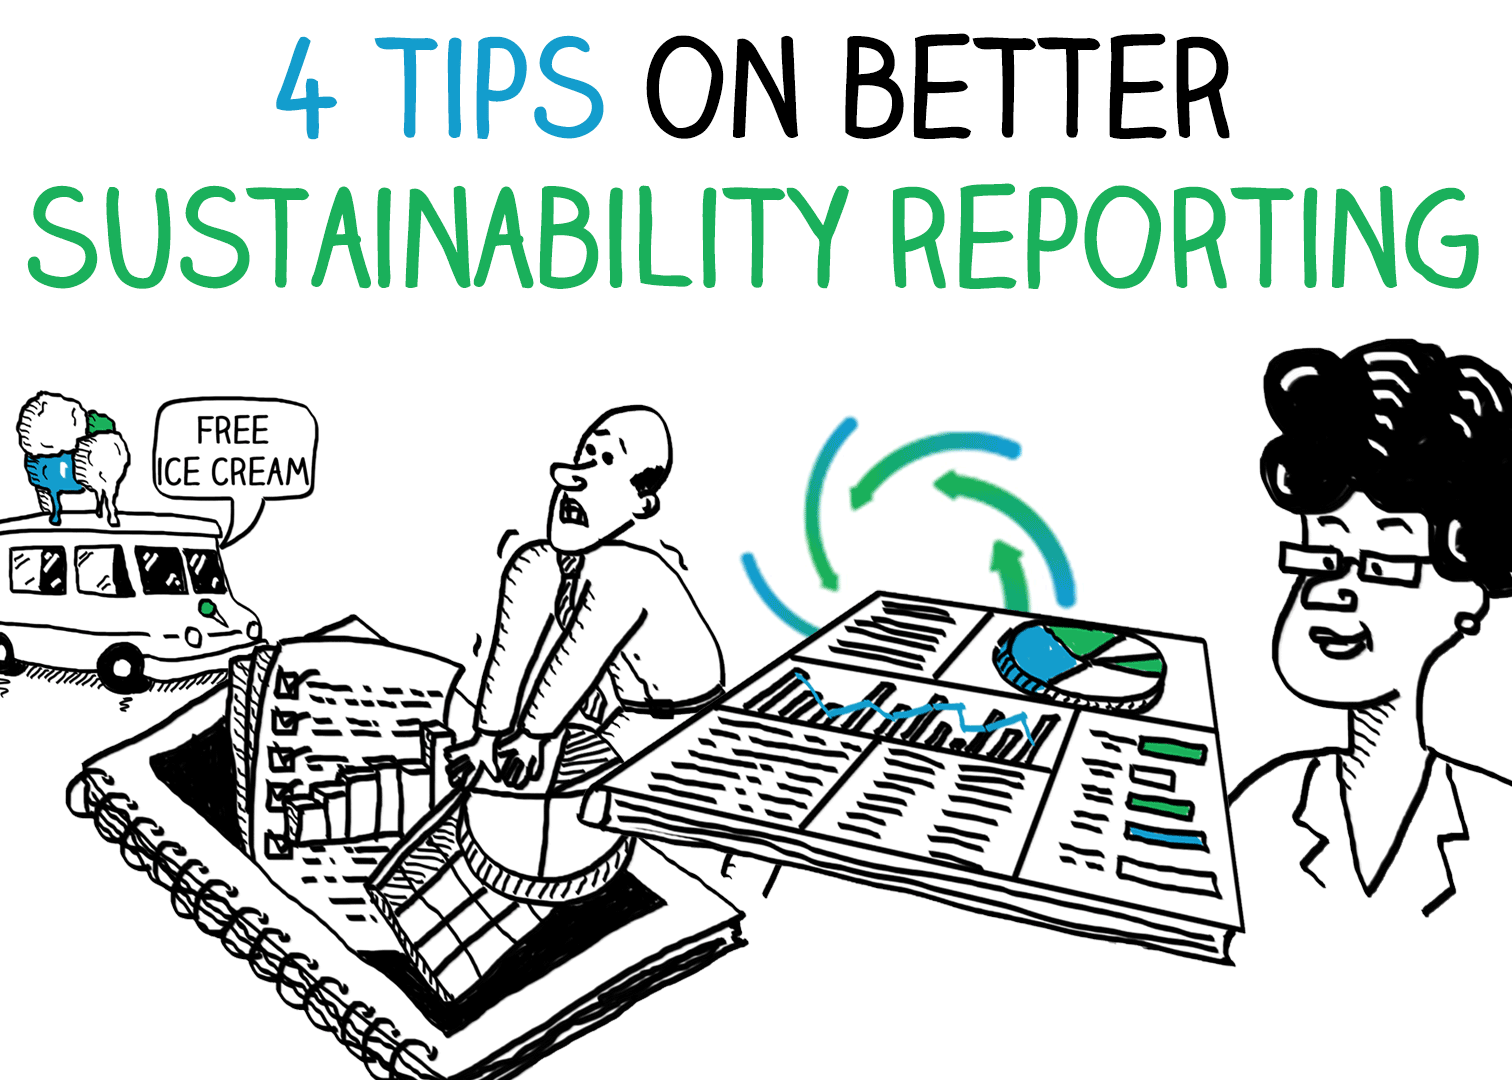 4 tips on better sustainability reporting